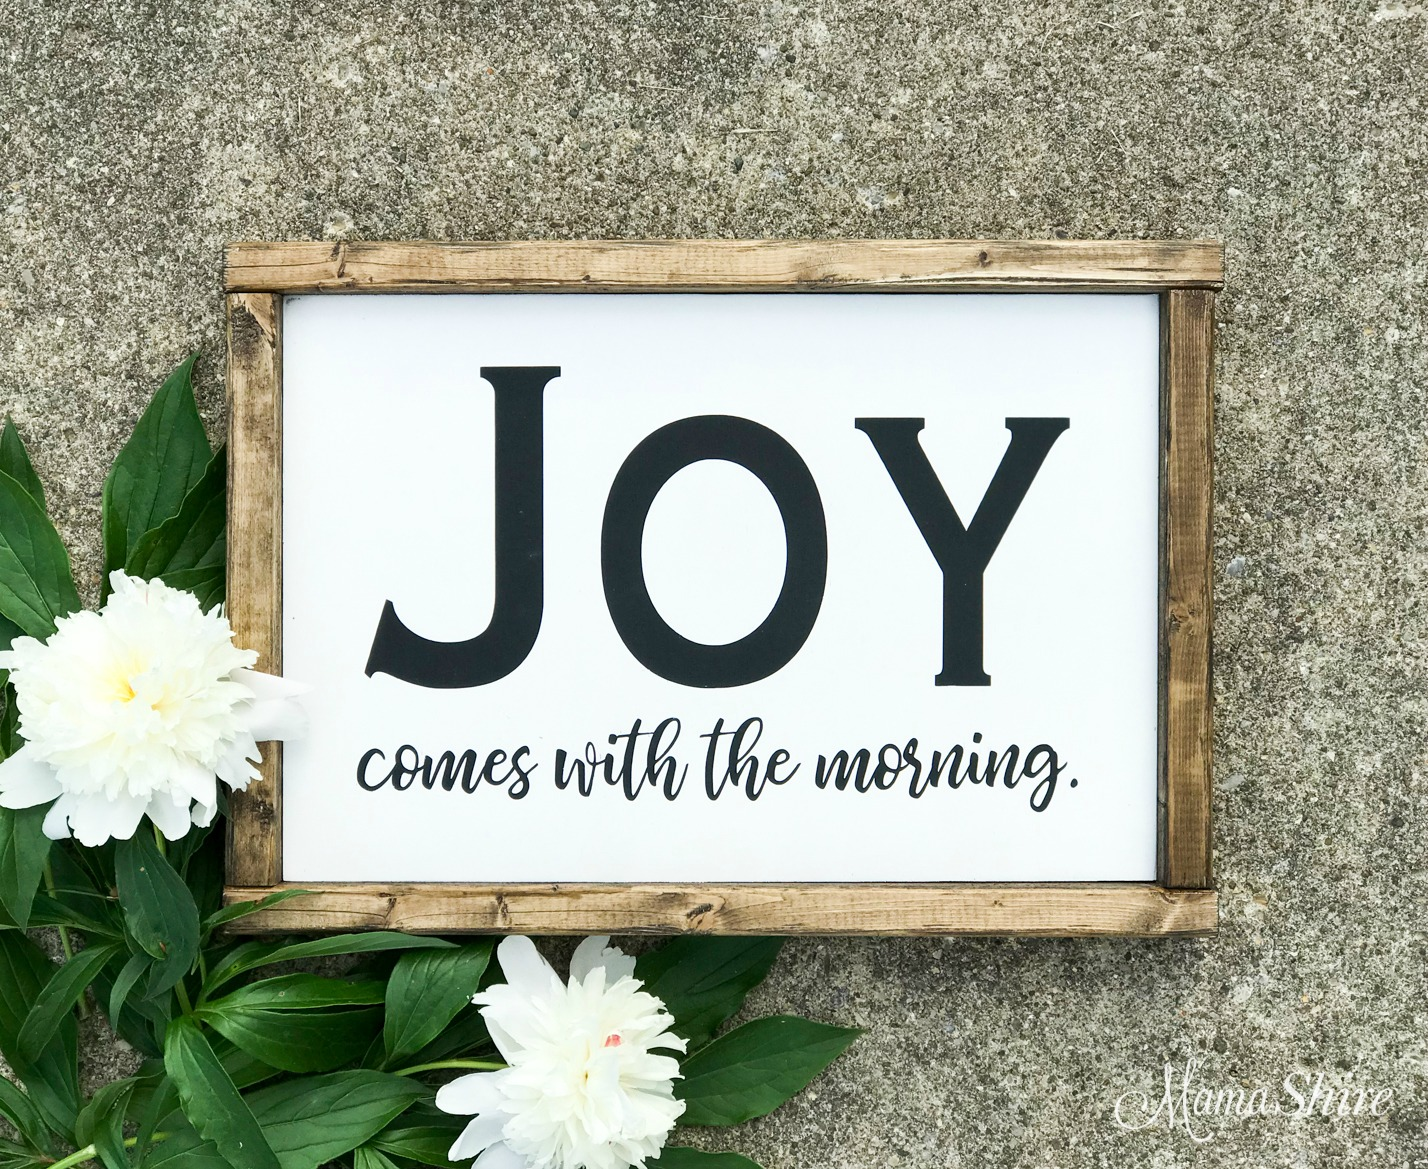 Joy comes in the morning wood sign made with SVG cut file.